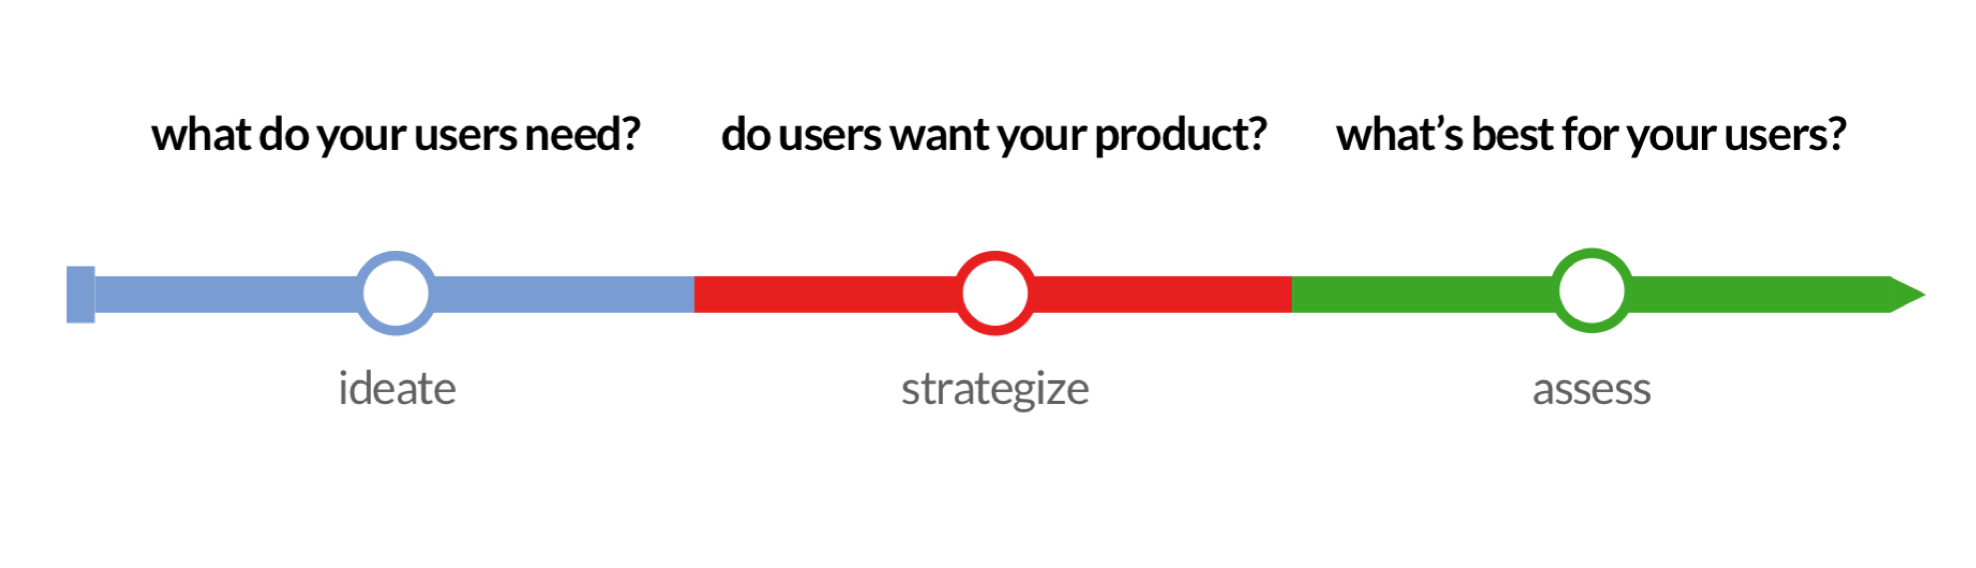 """an image of an arrow. First, along the arrow is the section """"ideate"""" with the question """"what do your users need?"""". Next, the middle section is """"strategize"""" with the question """"do you users want your product?"""". The final section is """"success"""" with the question, """"what's best for your users?"""""""